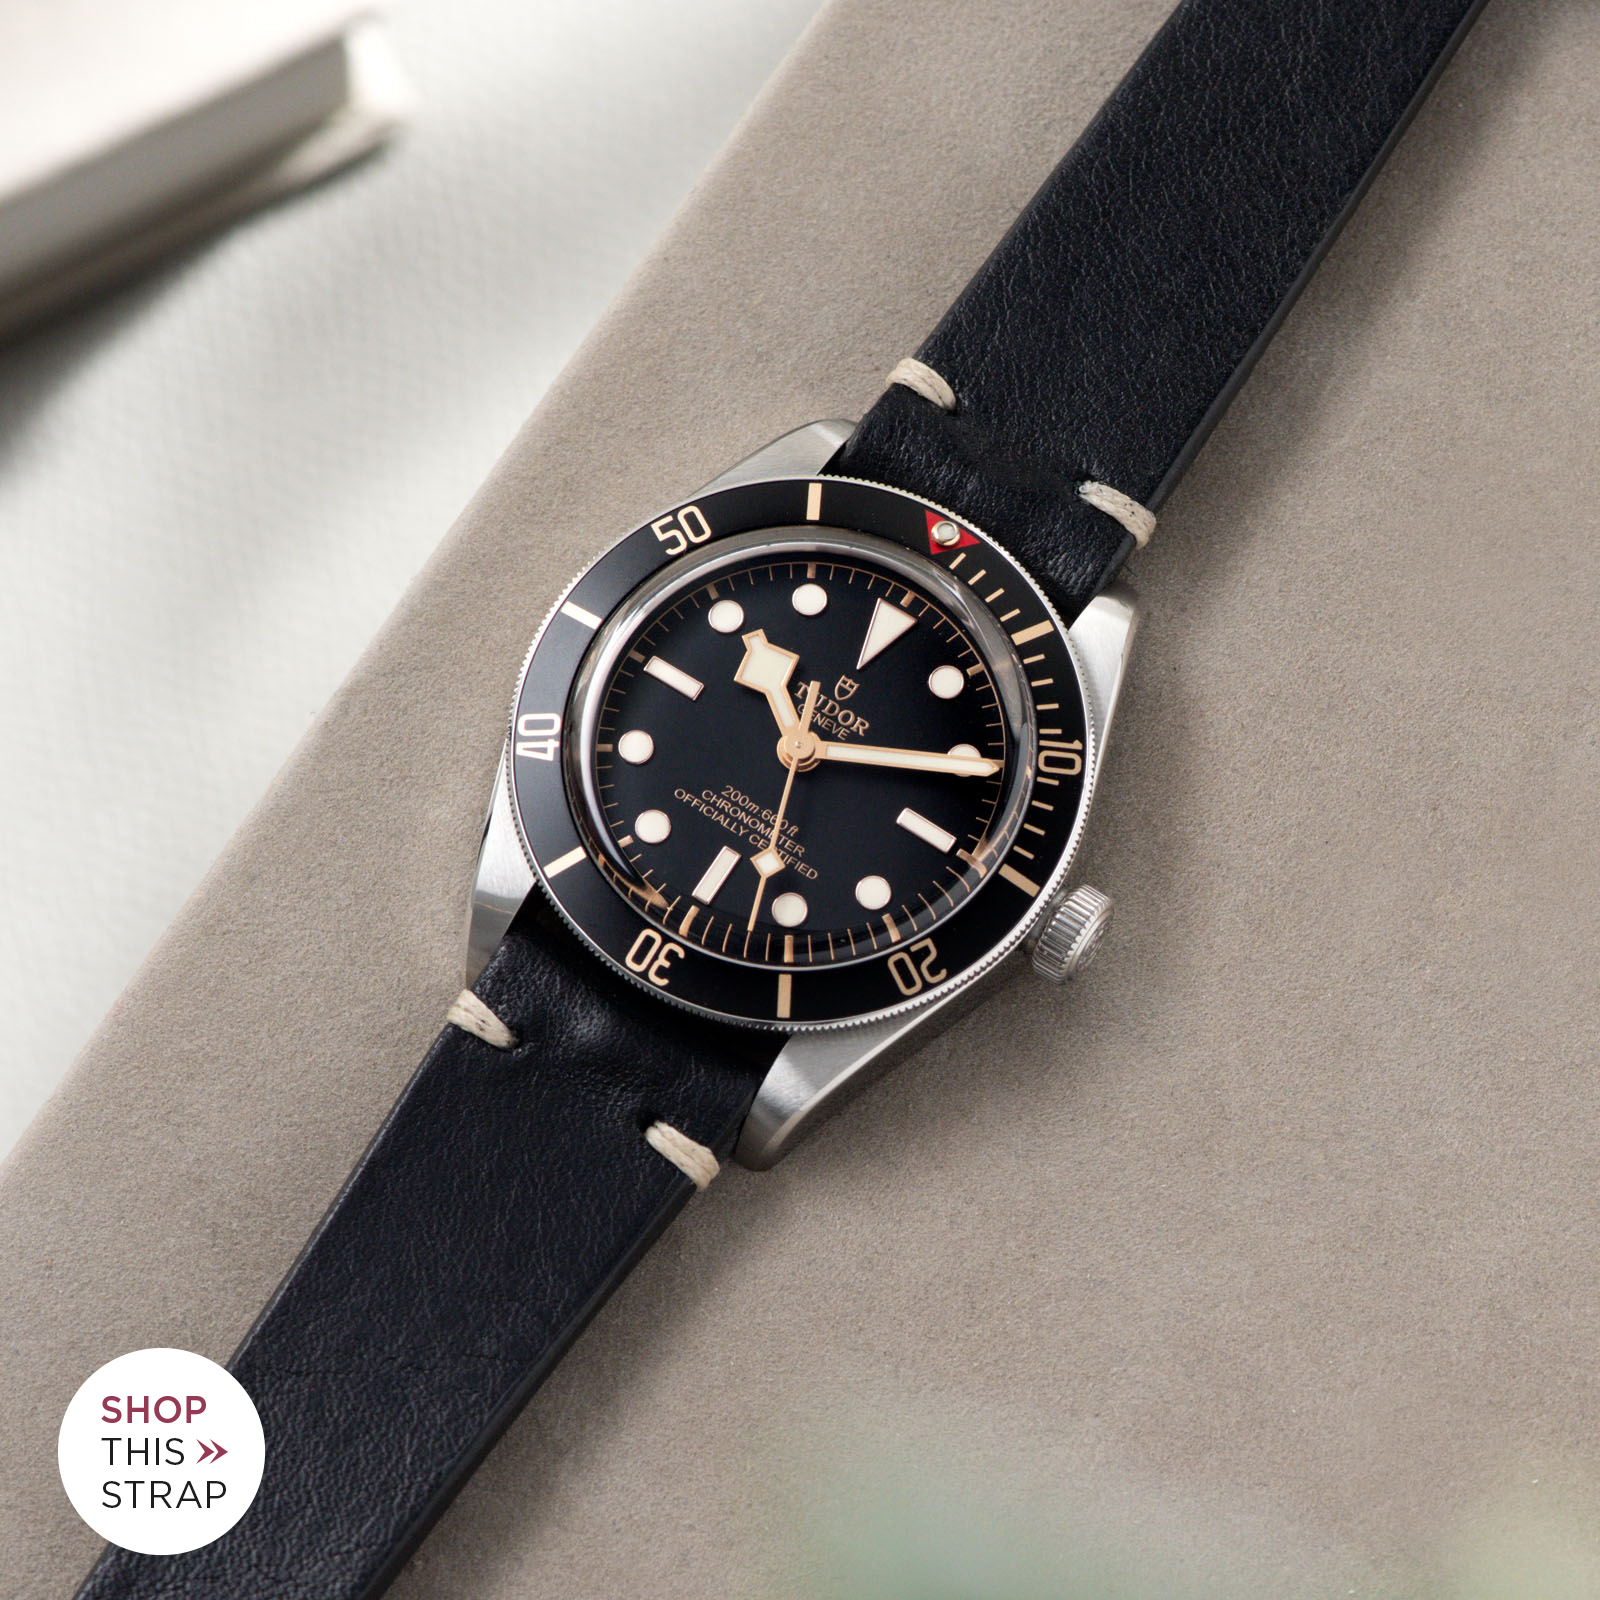 Bulang and Sons_Strap Guide_Tudor Black Bay 58_Black Leather Watch Strap